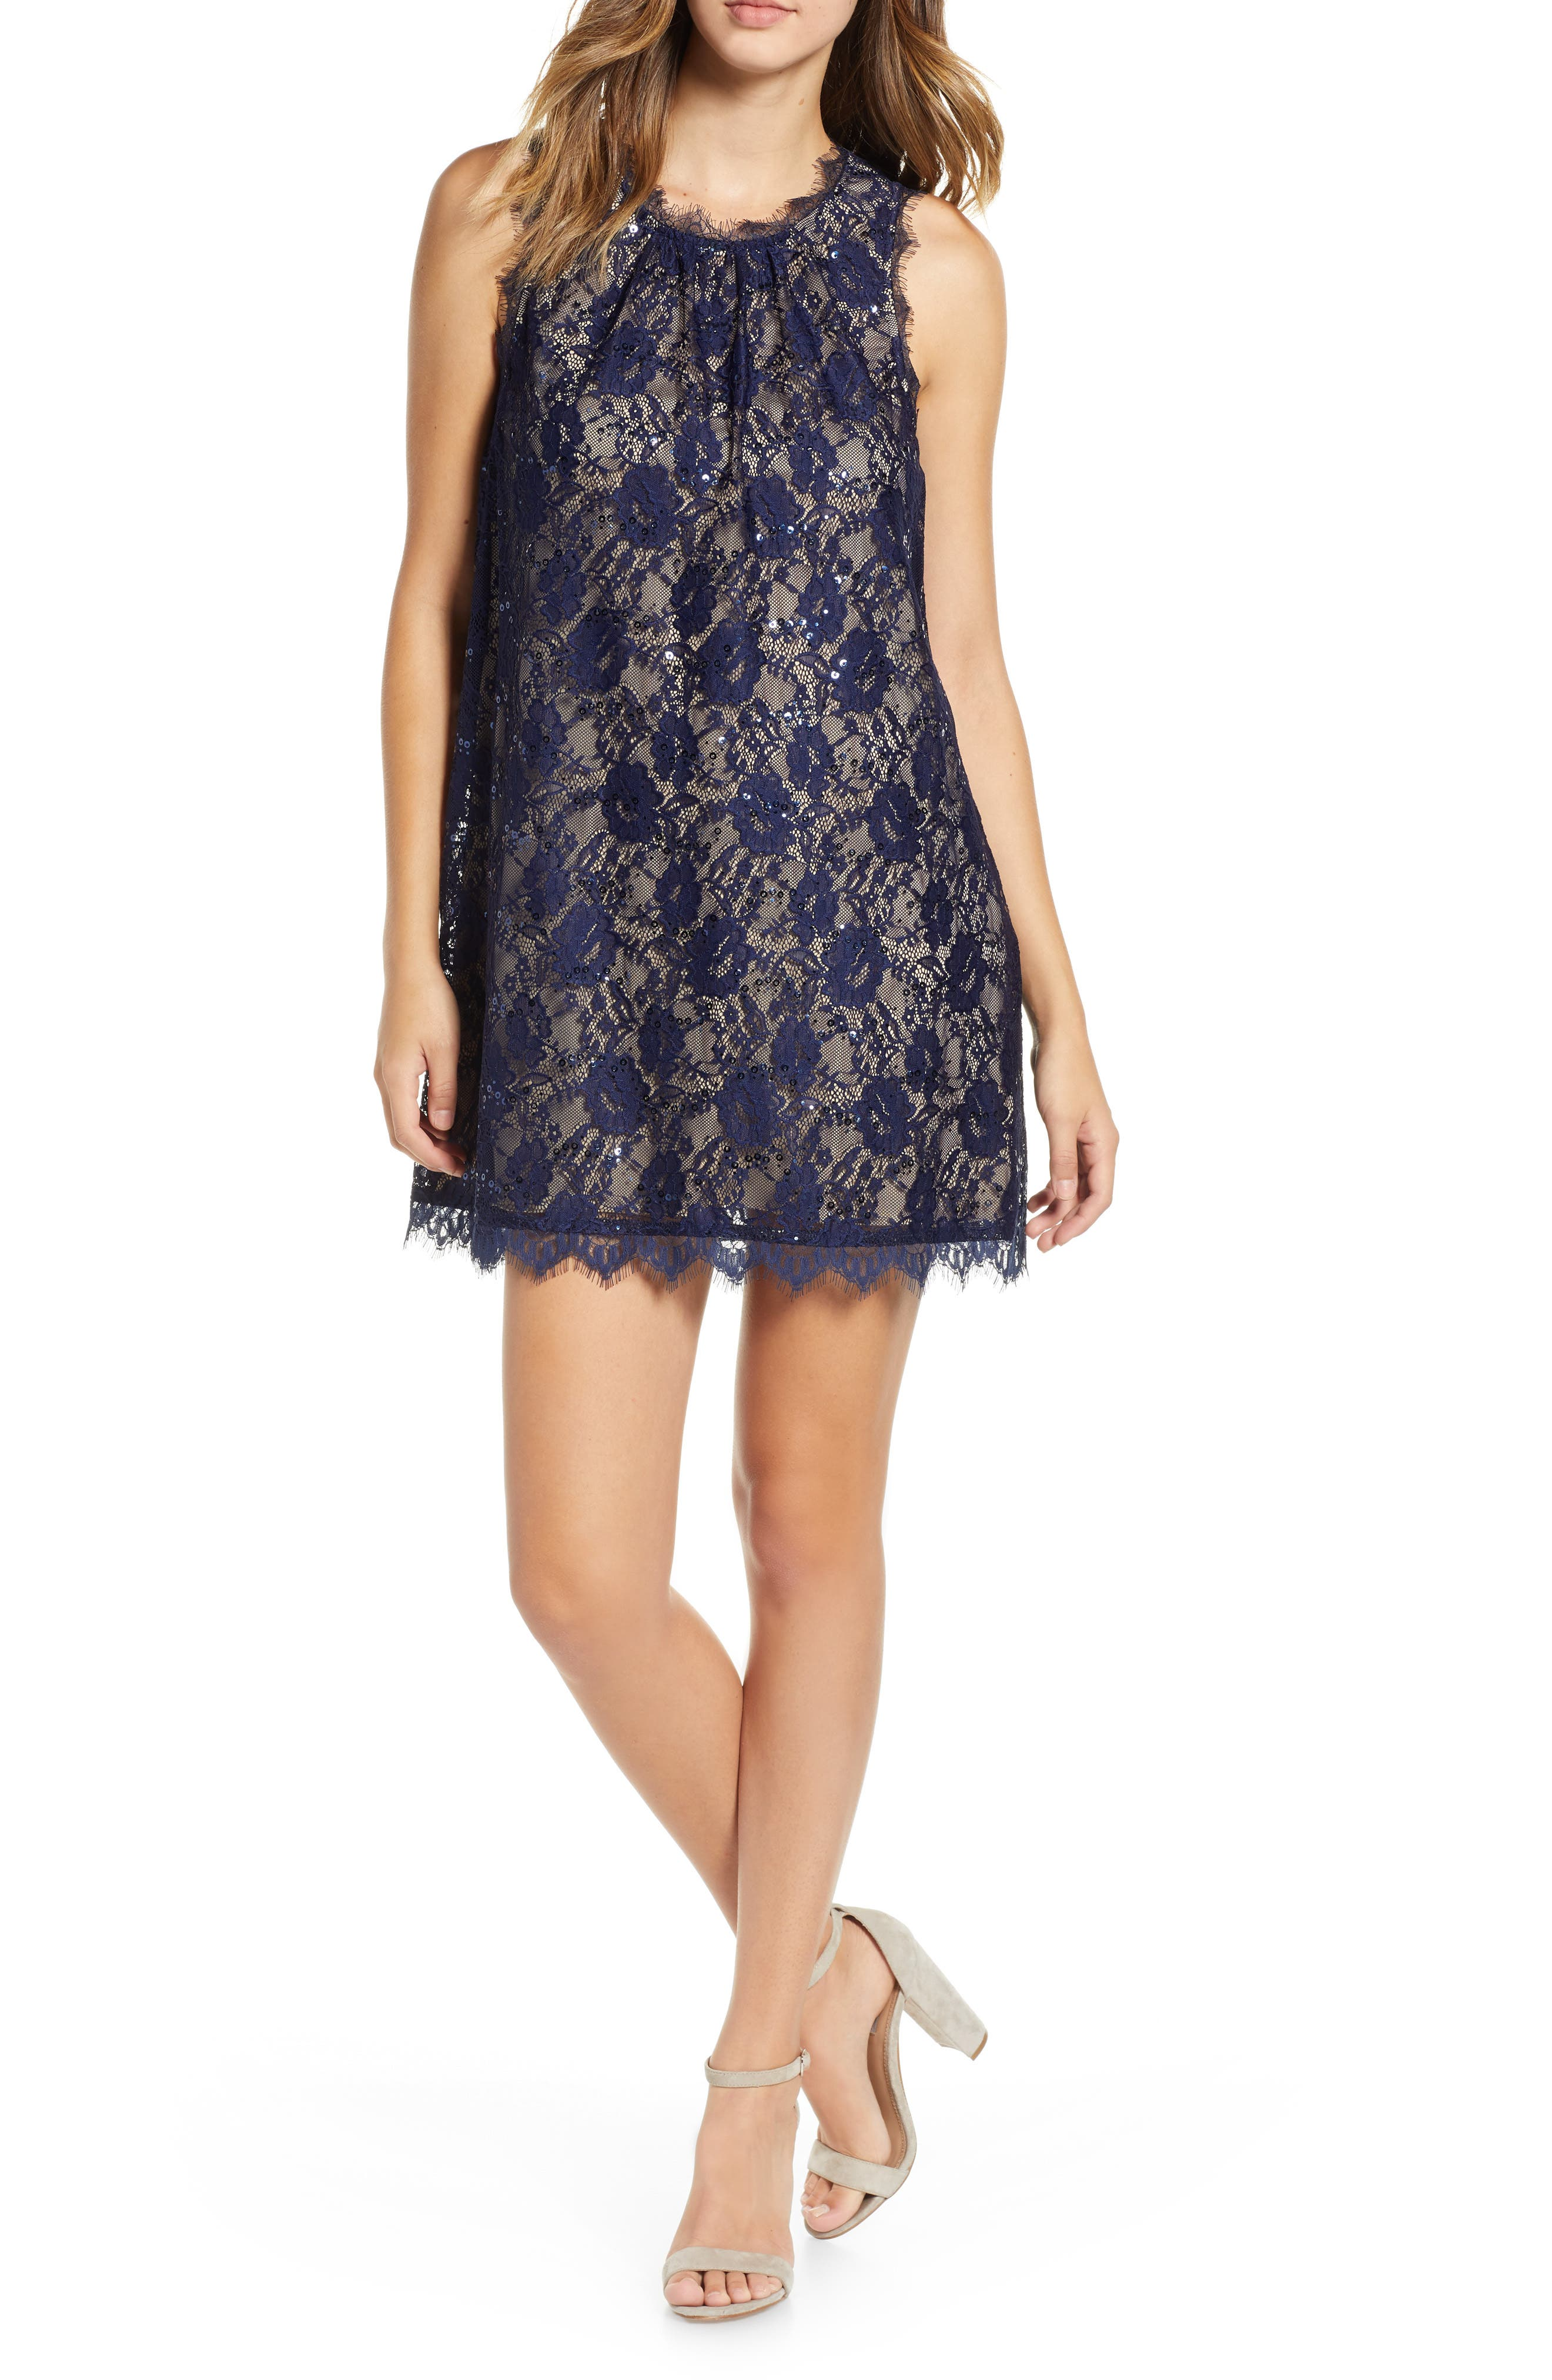 Sequin Lace Shift Dress,                             Main thumbnail 1, color,                             NAVY/ TAUPE